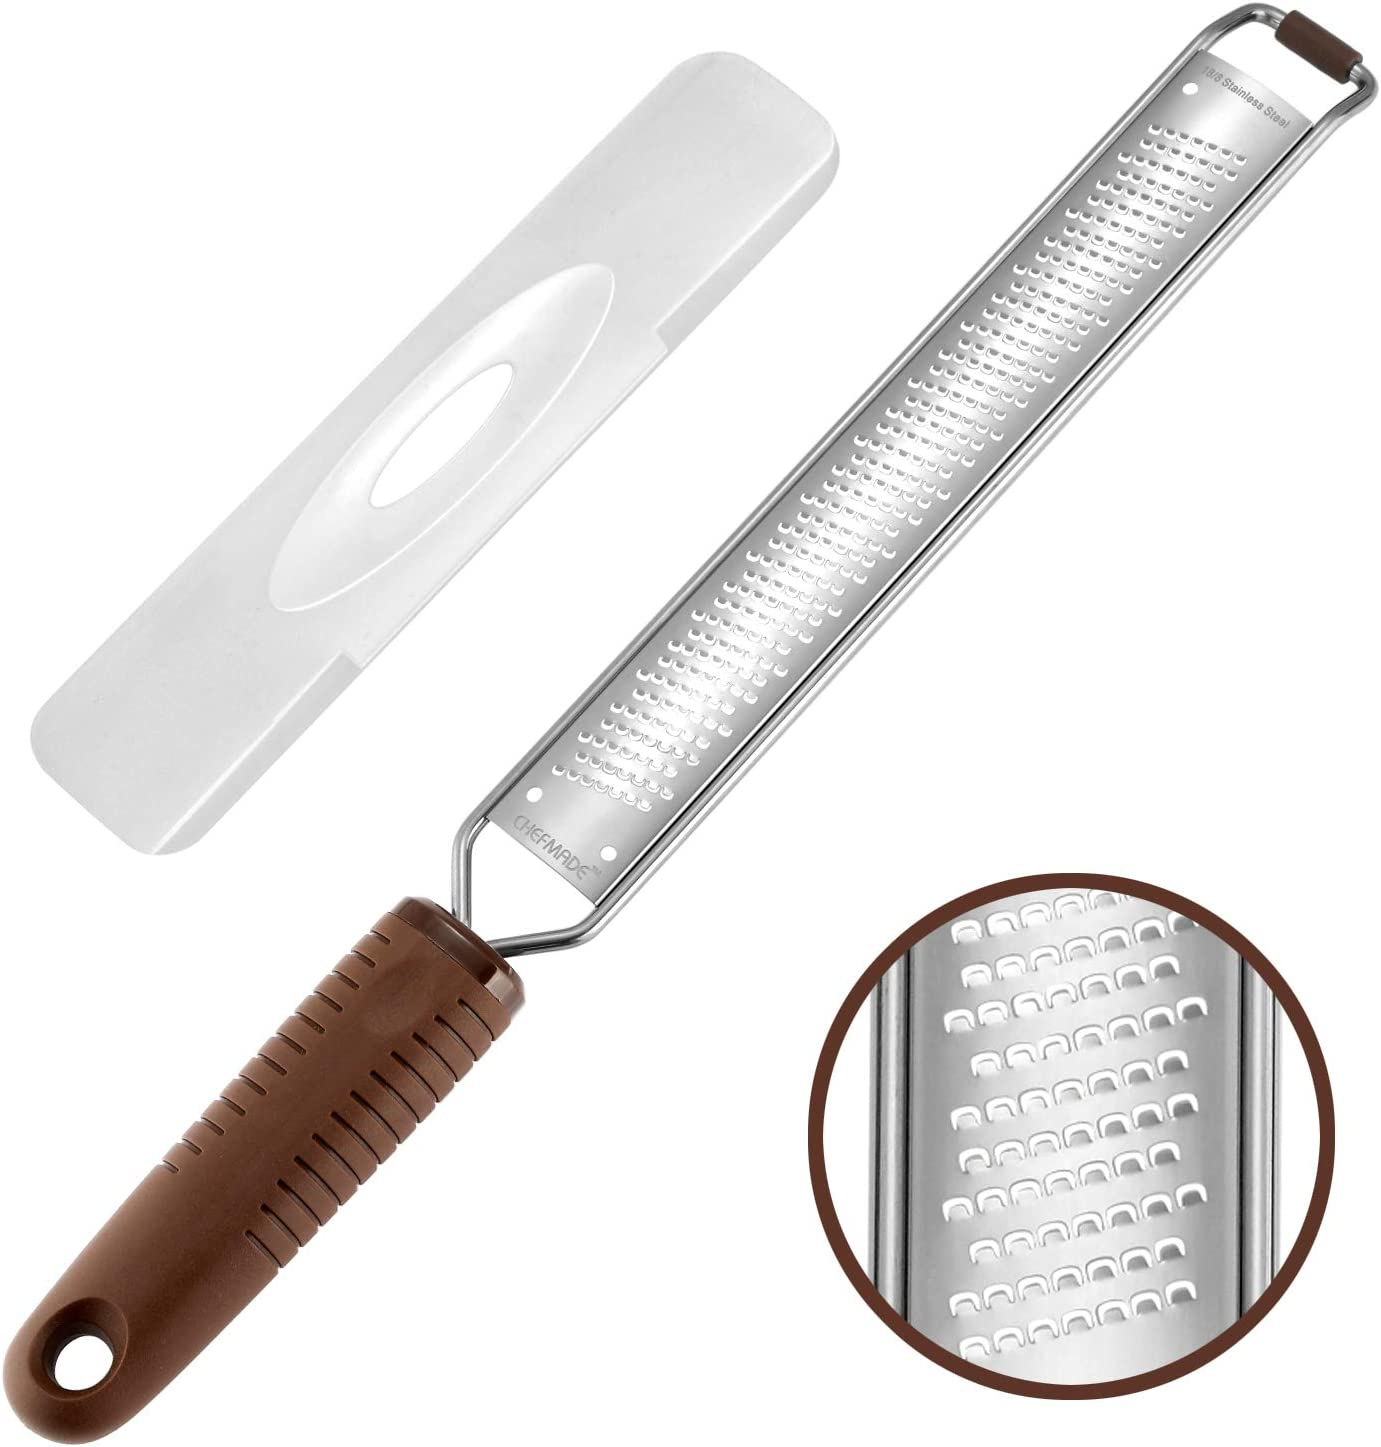 CHEFMADE Lemon Grater with Dust-Proof Lip, Non-stick 18/8 Stainless Steel Zester with Non-slip Handle and Brace for Spice Grinding